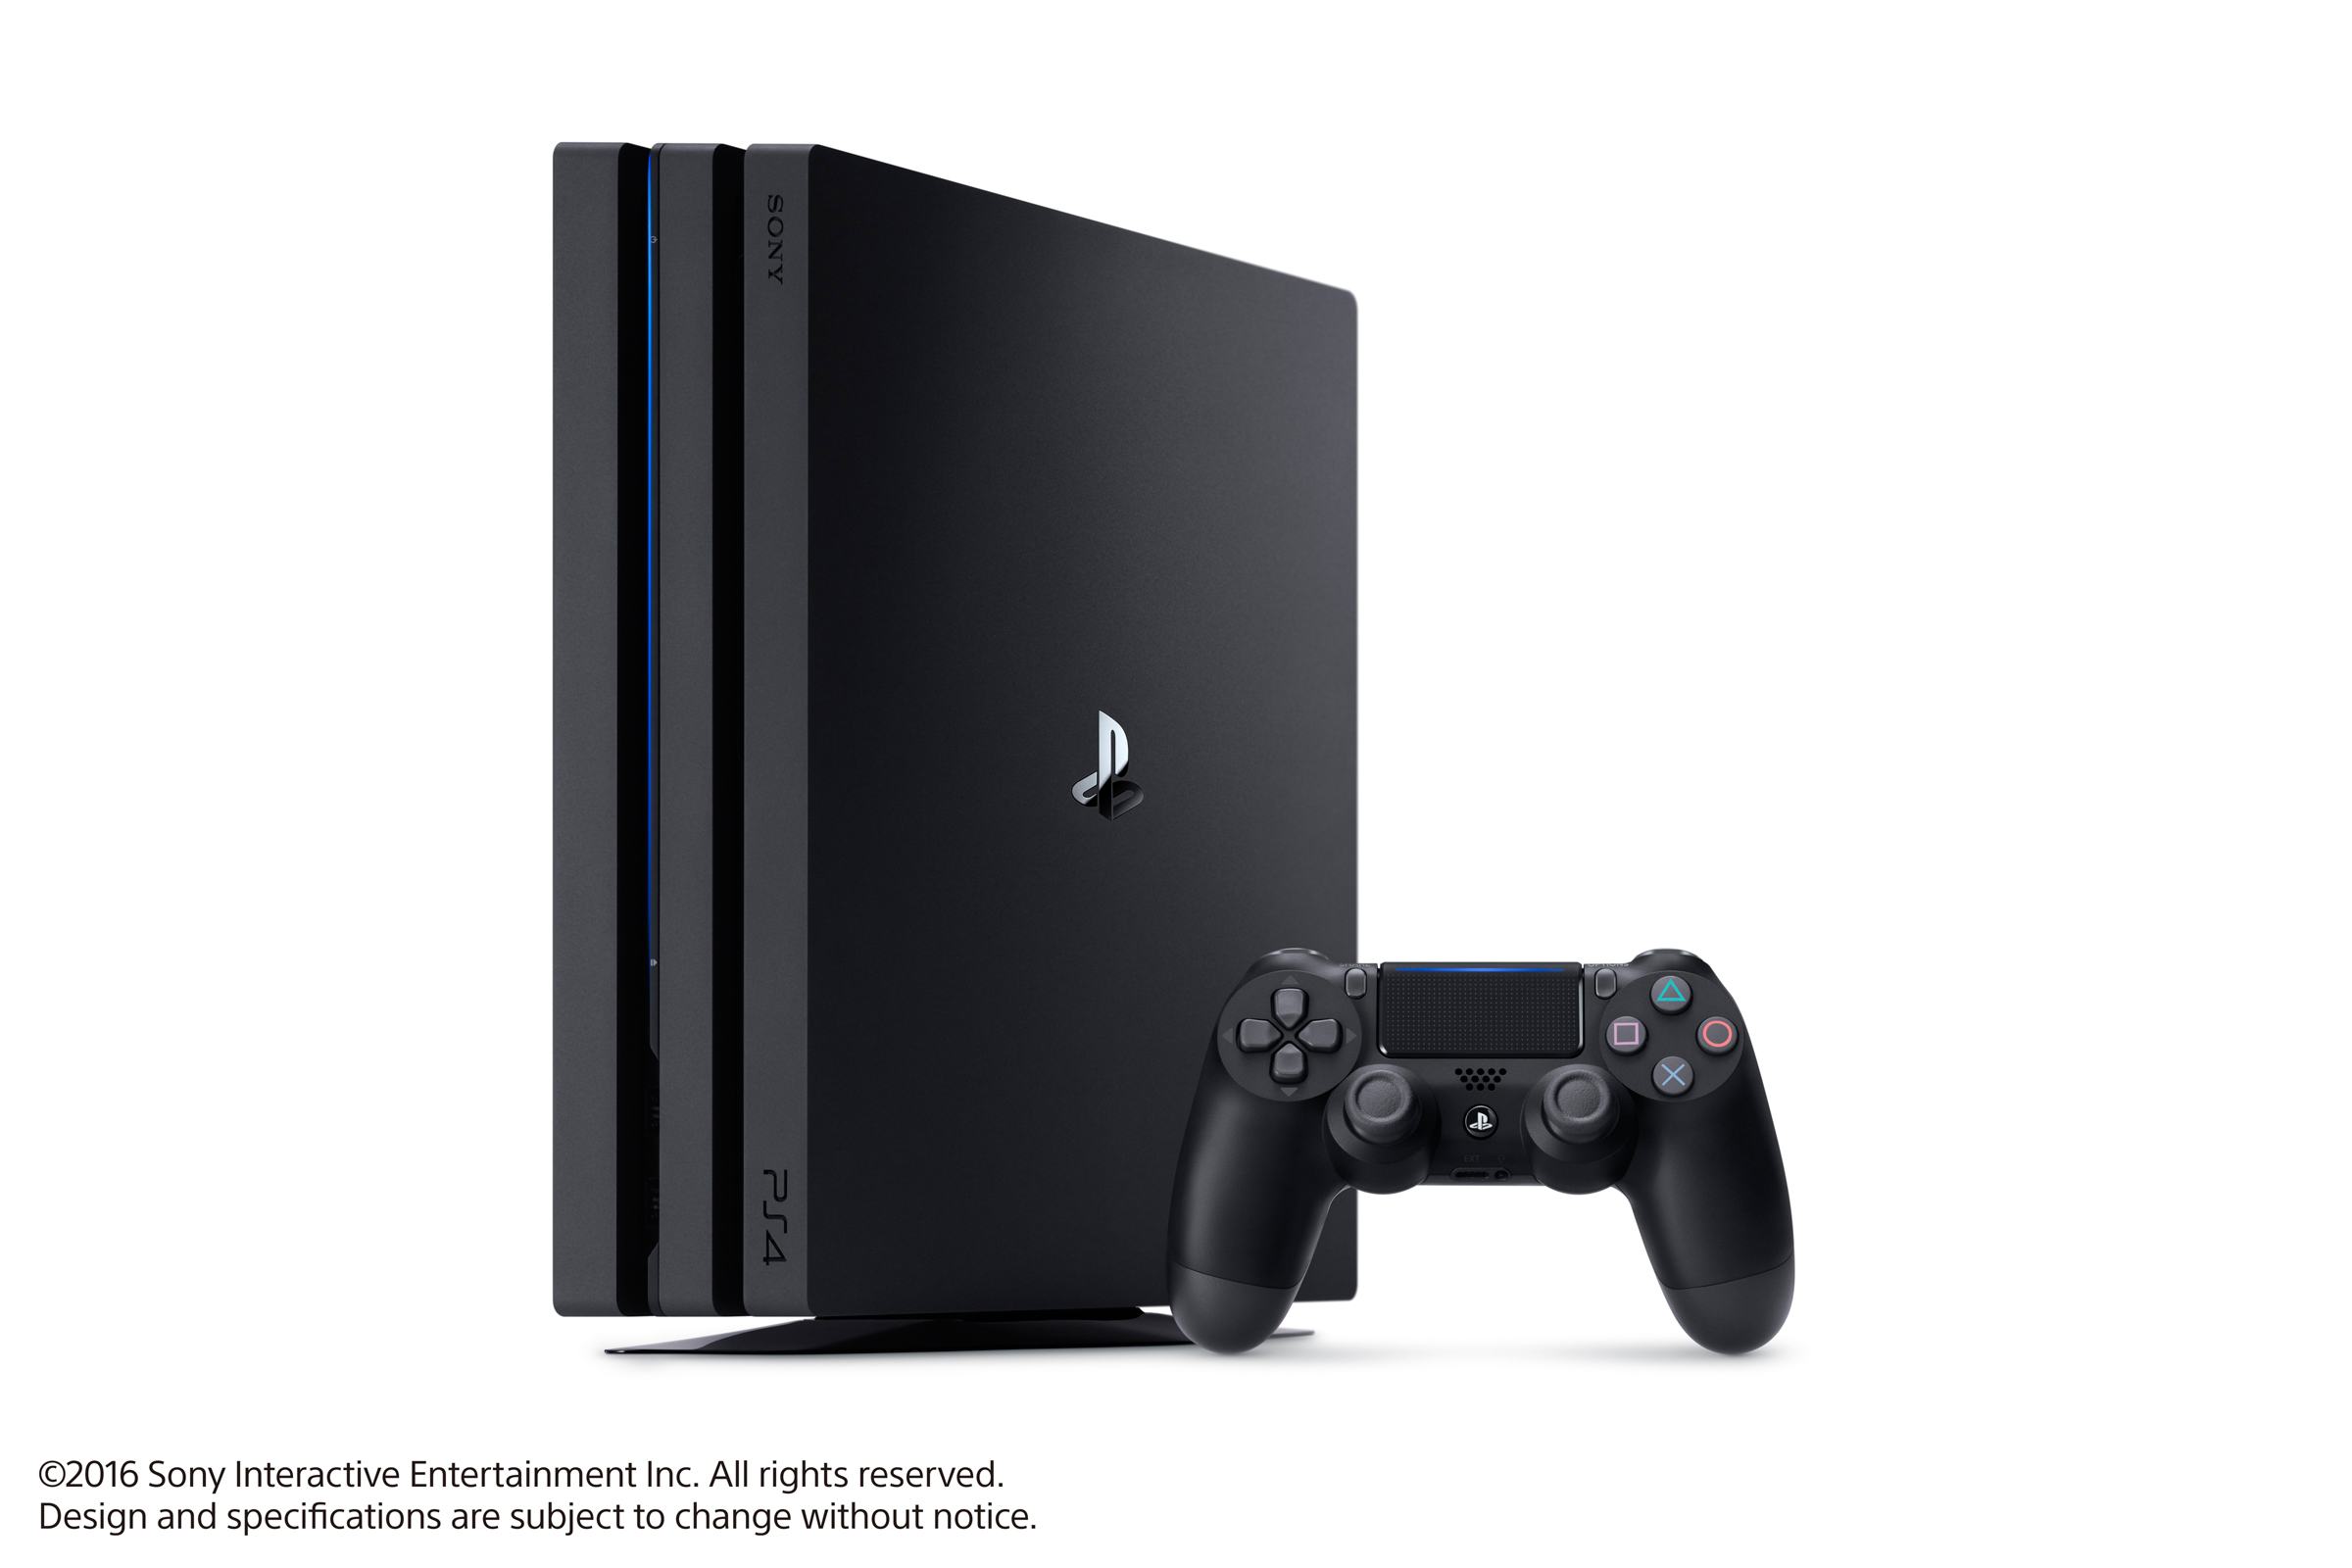 PS4 7000 01 withnotice 147328159